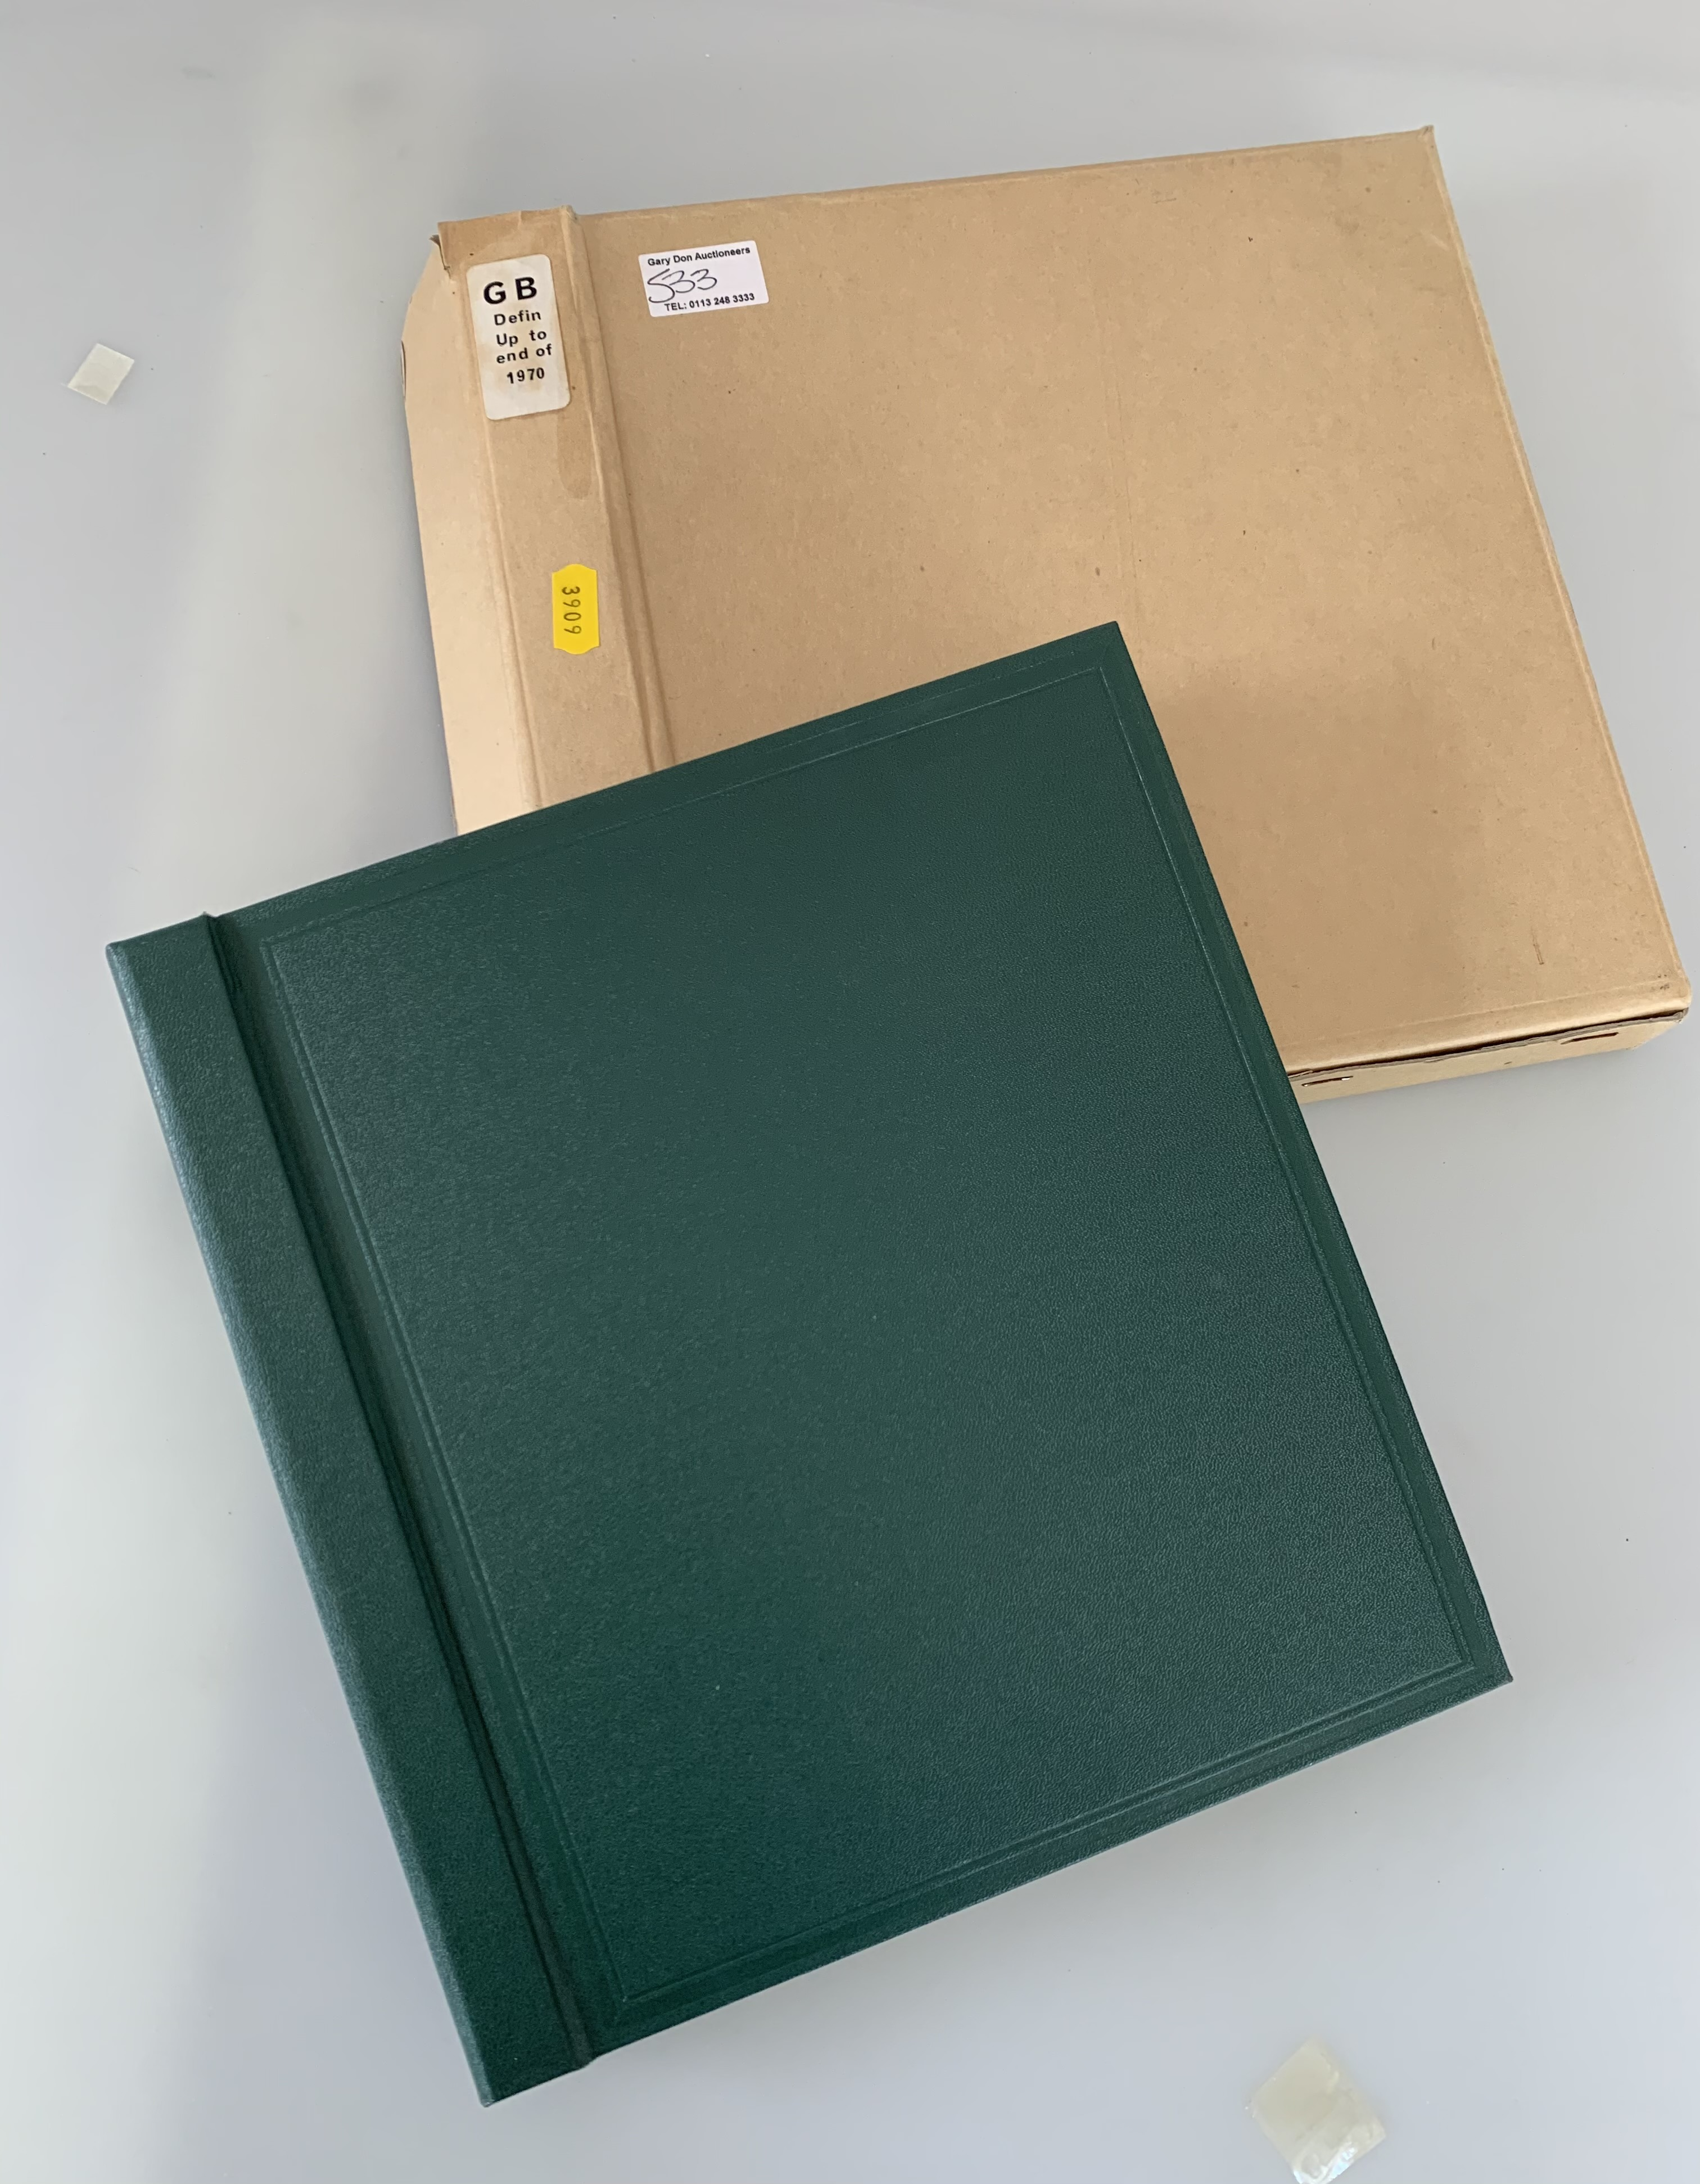 Boxed green album of GB definitives up to 1970